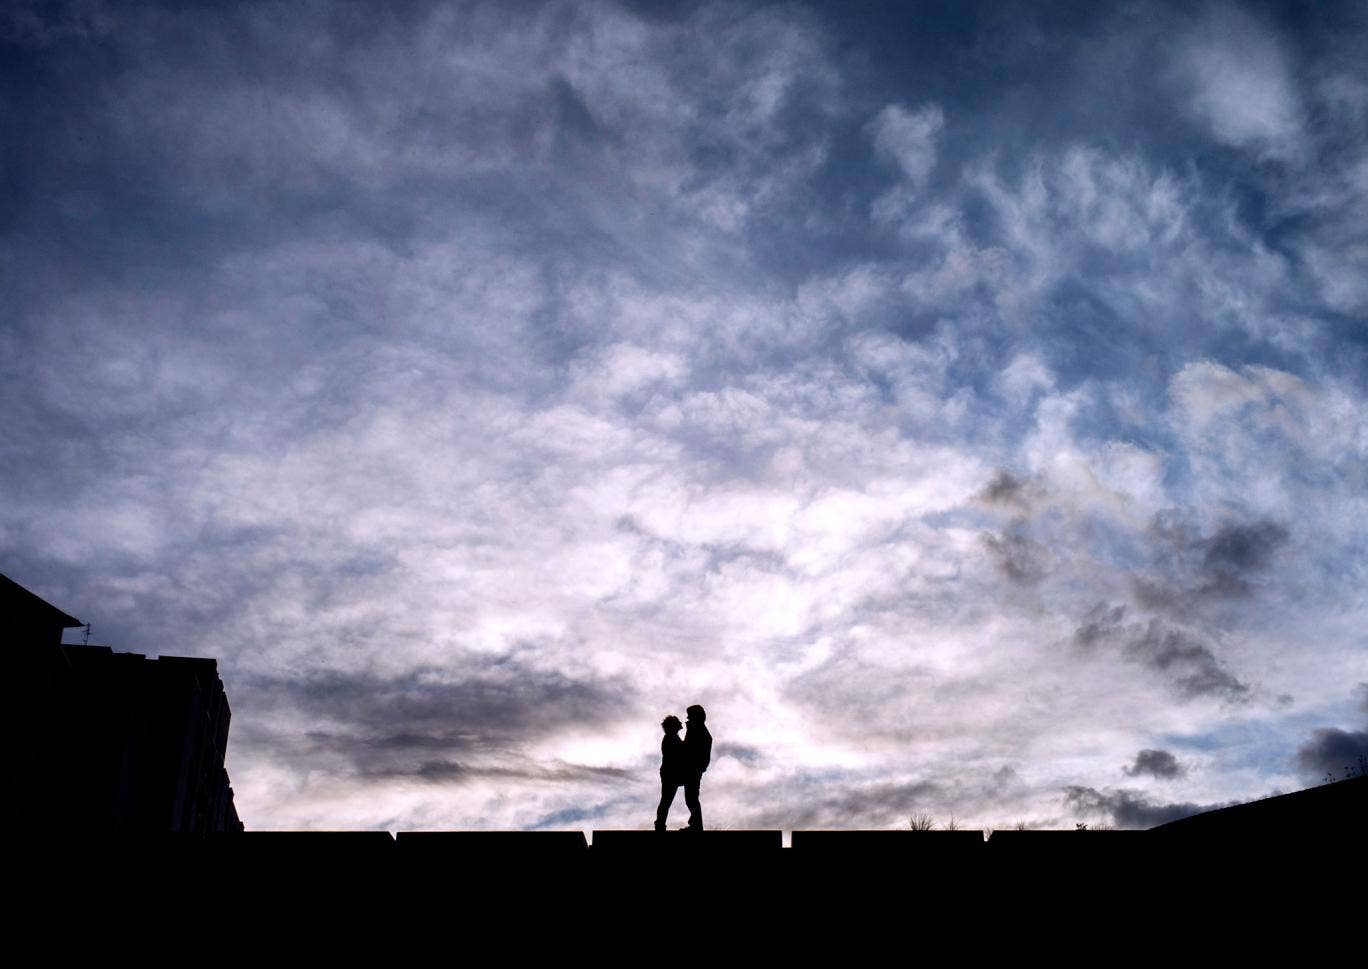 A couple stand in front of a beautiful cloudy scene